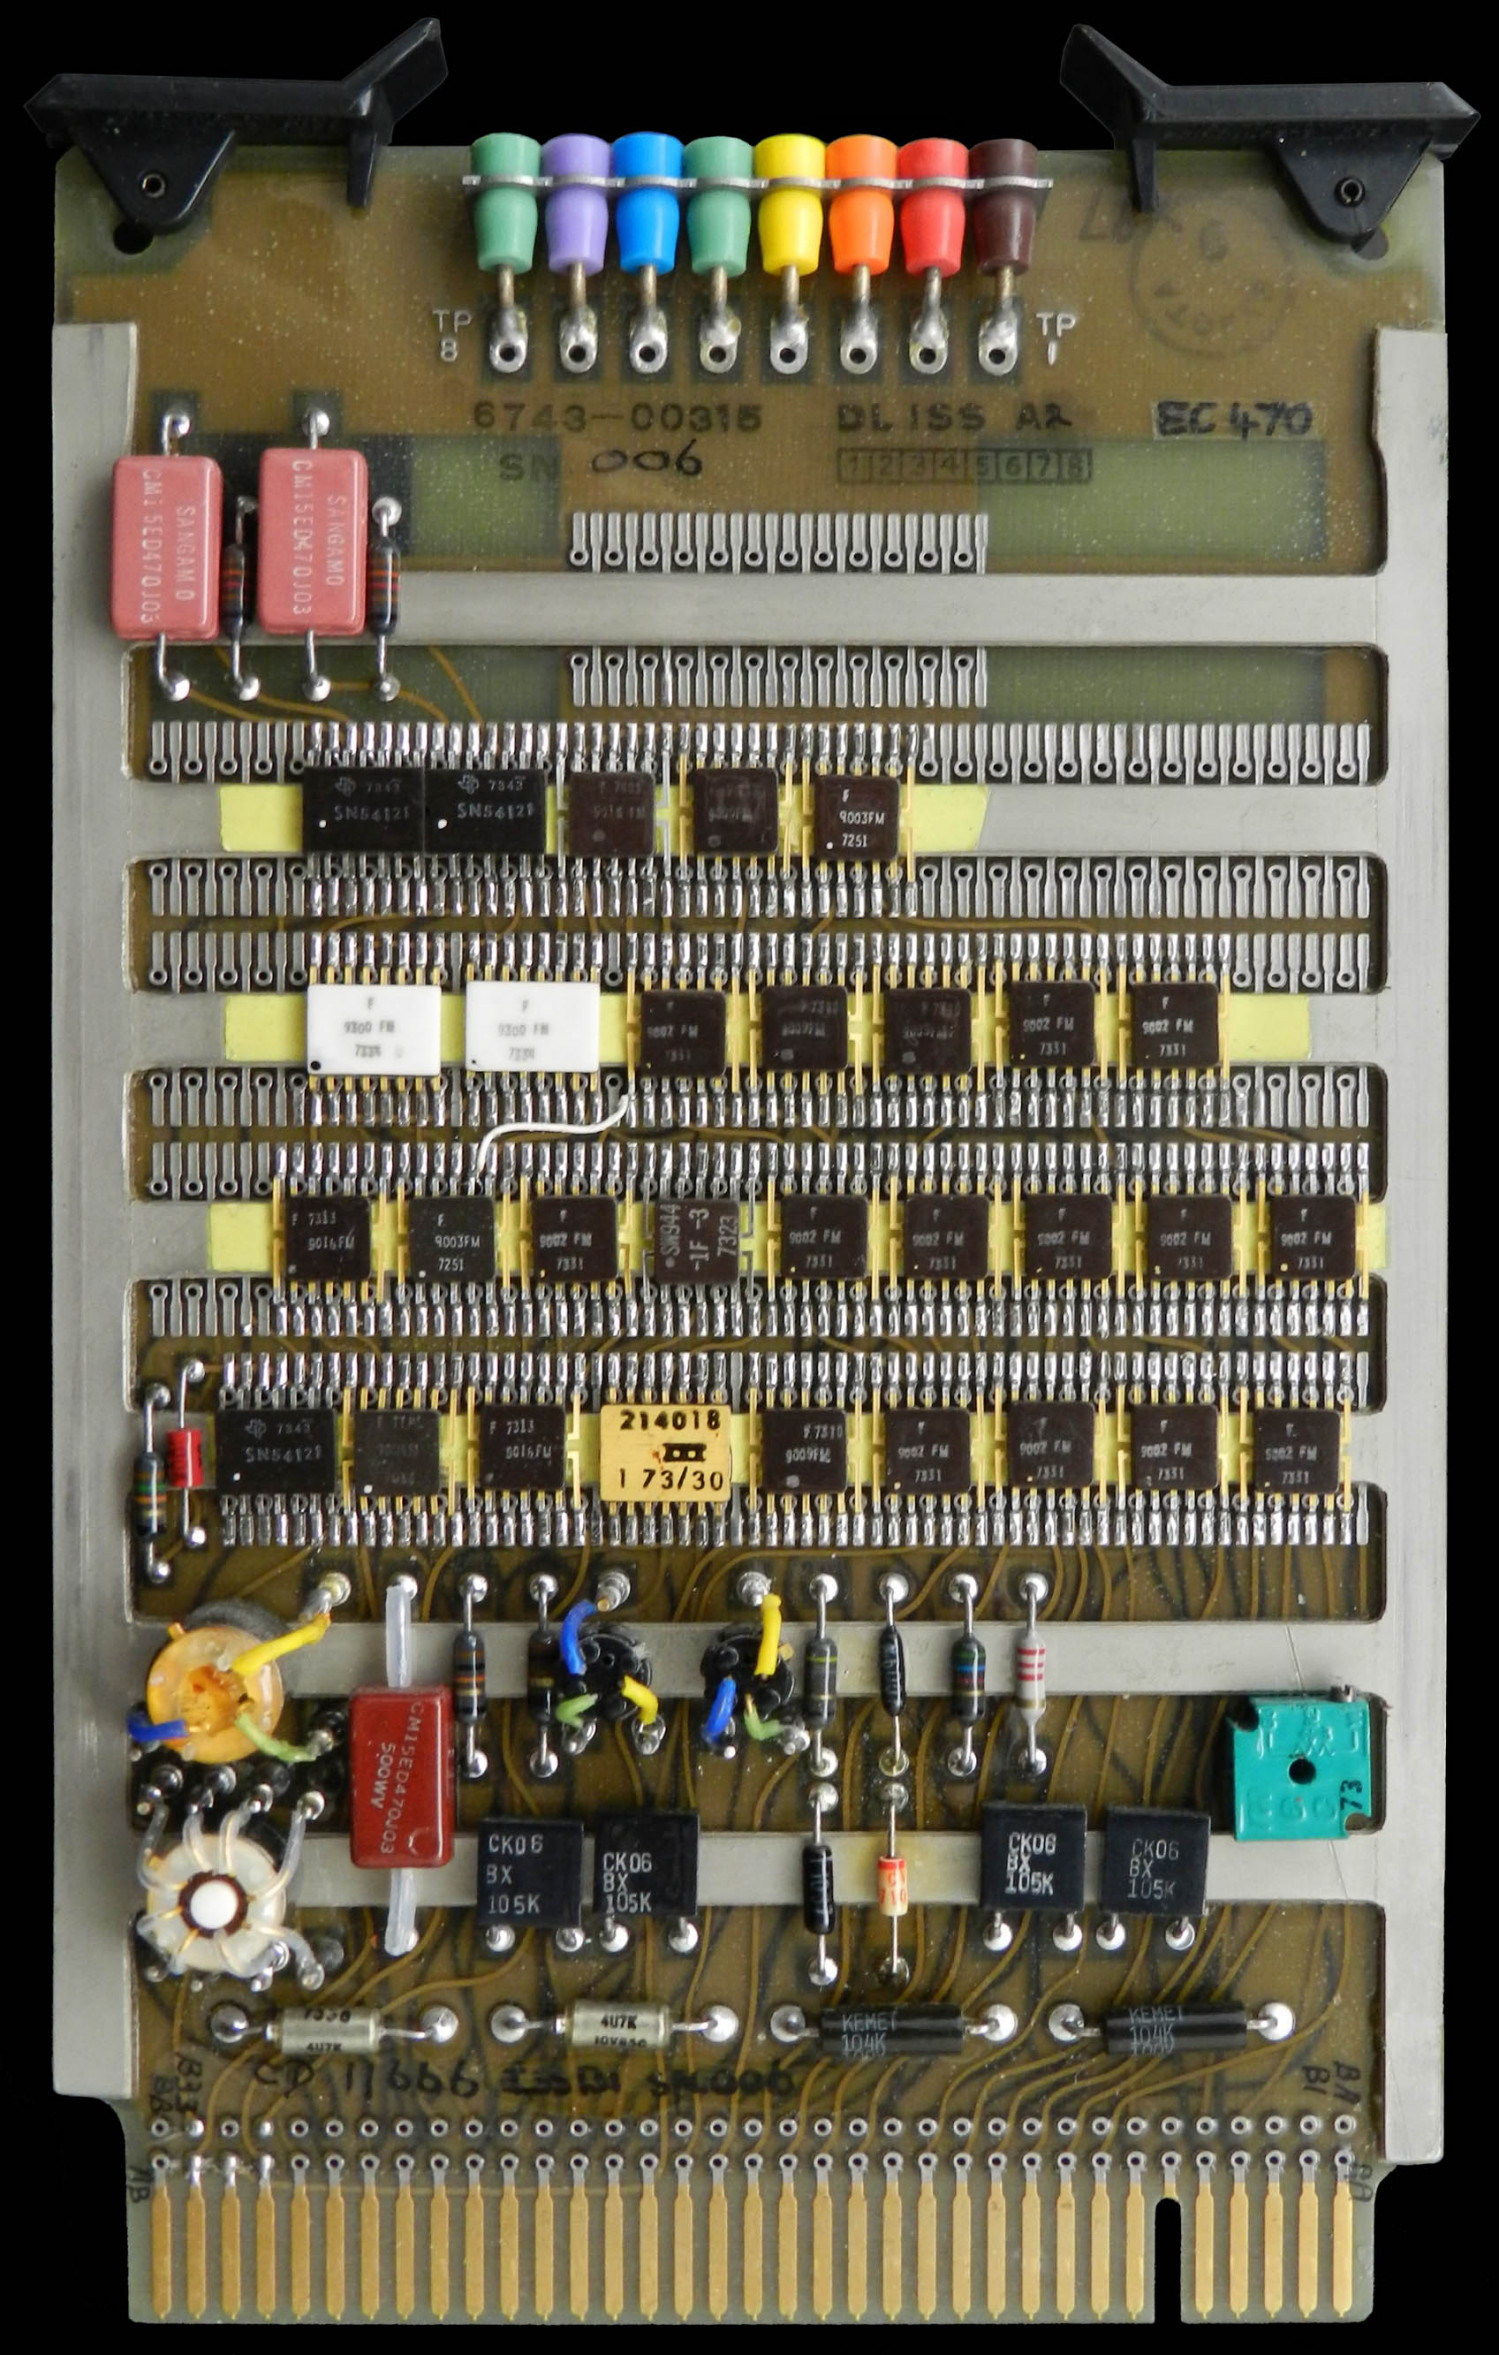 NCS1 Store Timing Circuit Board